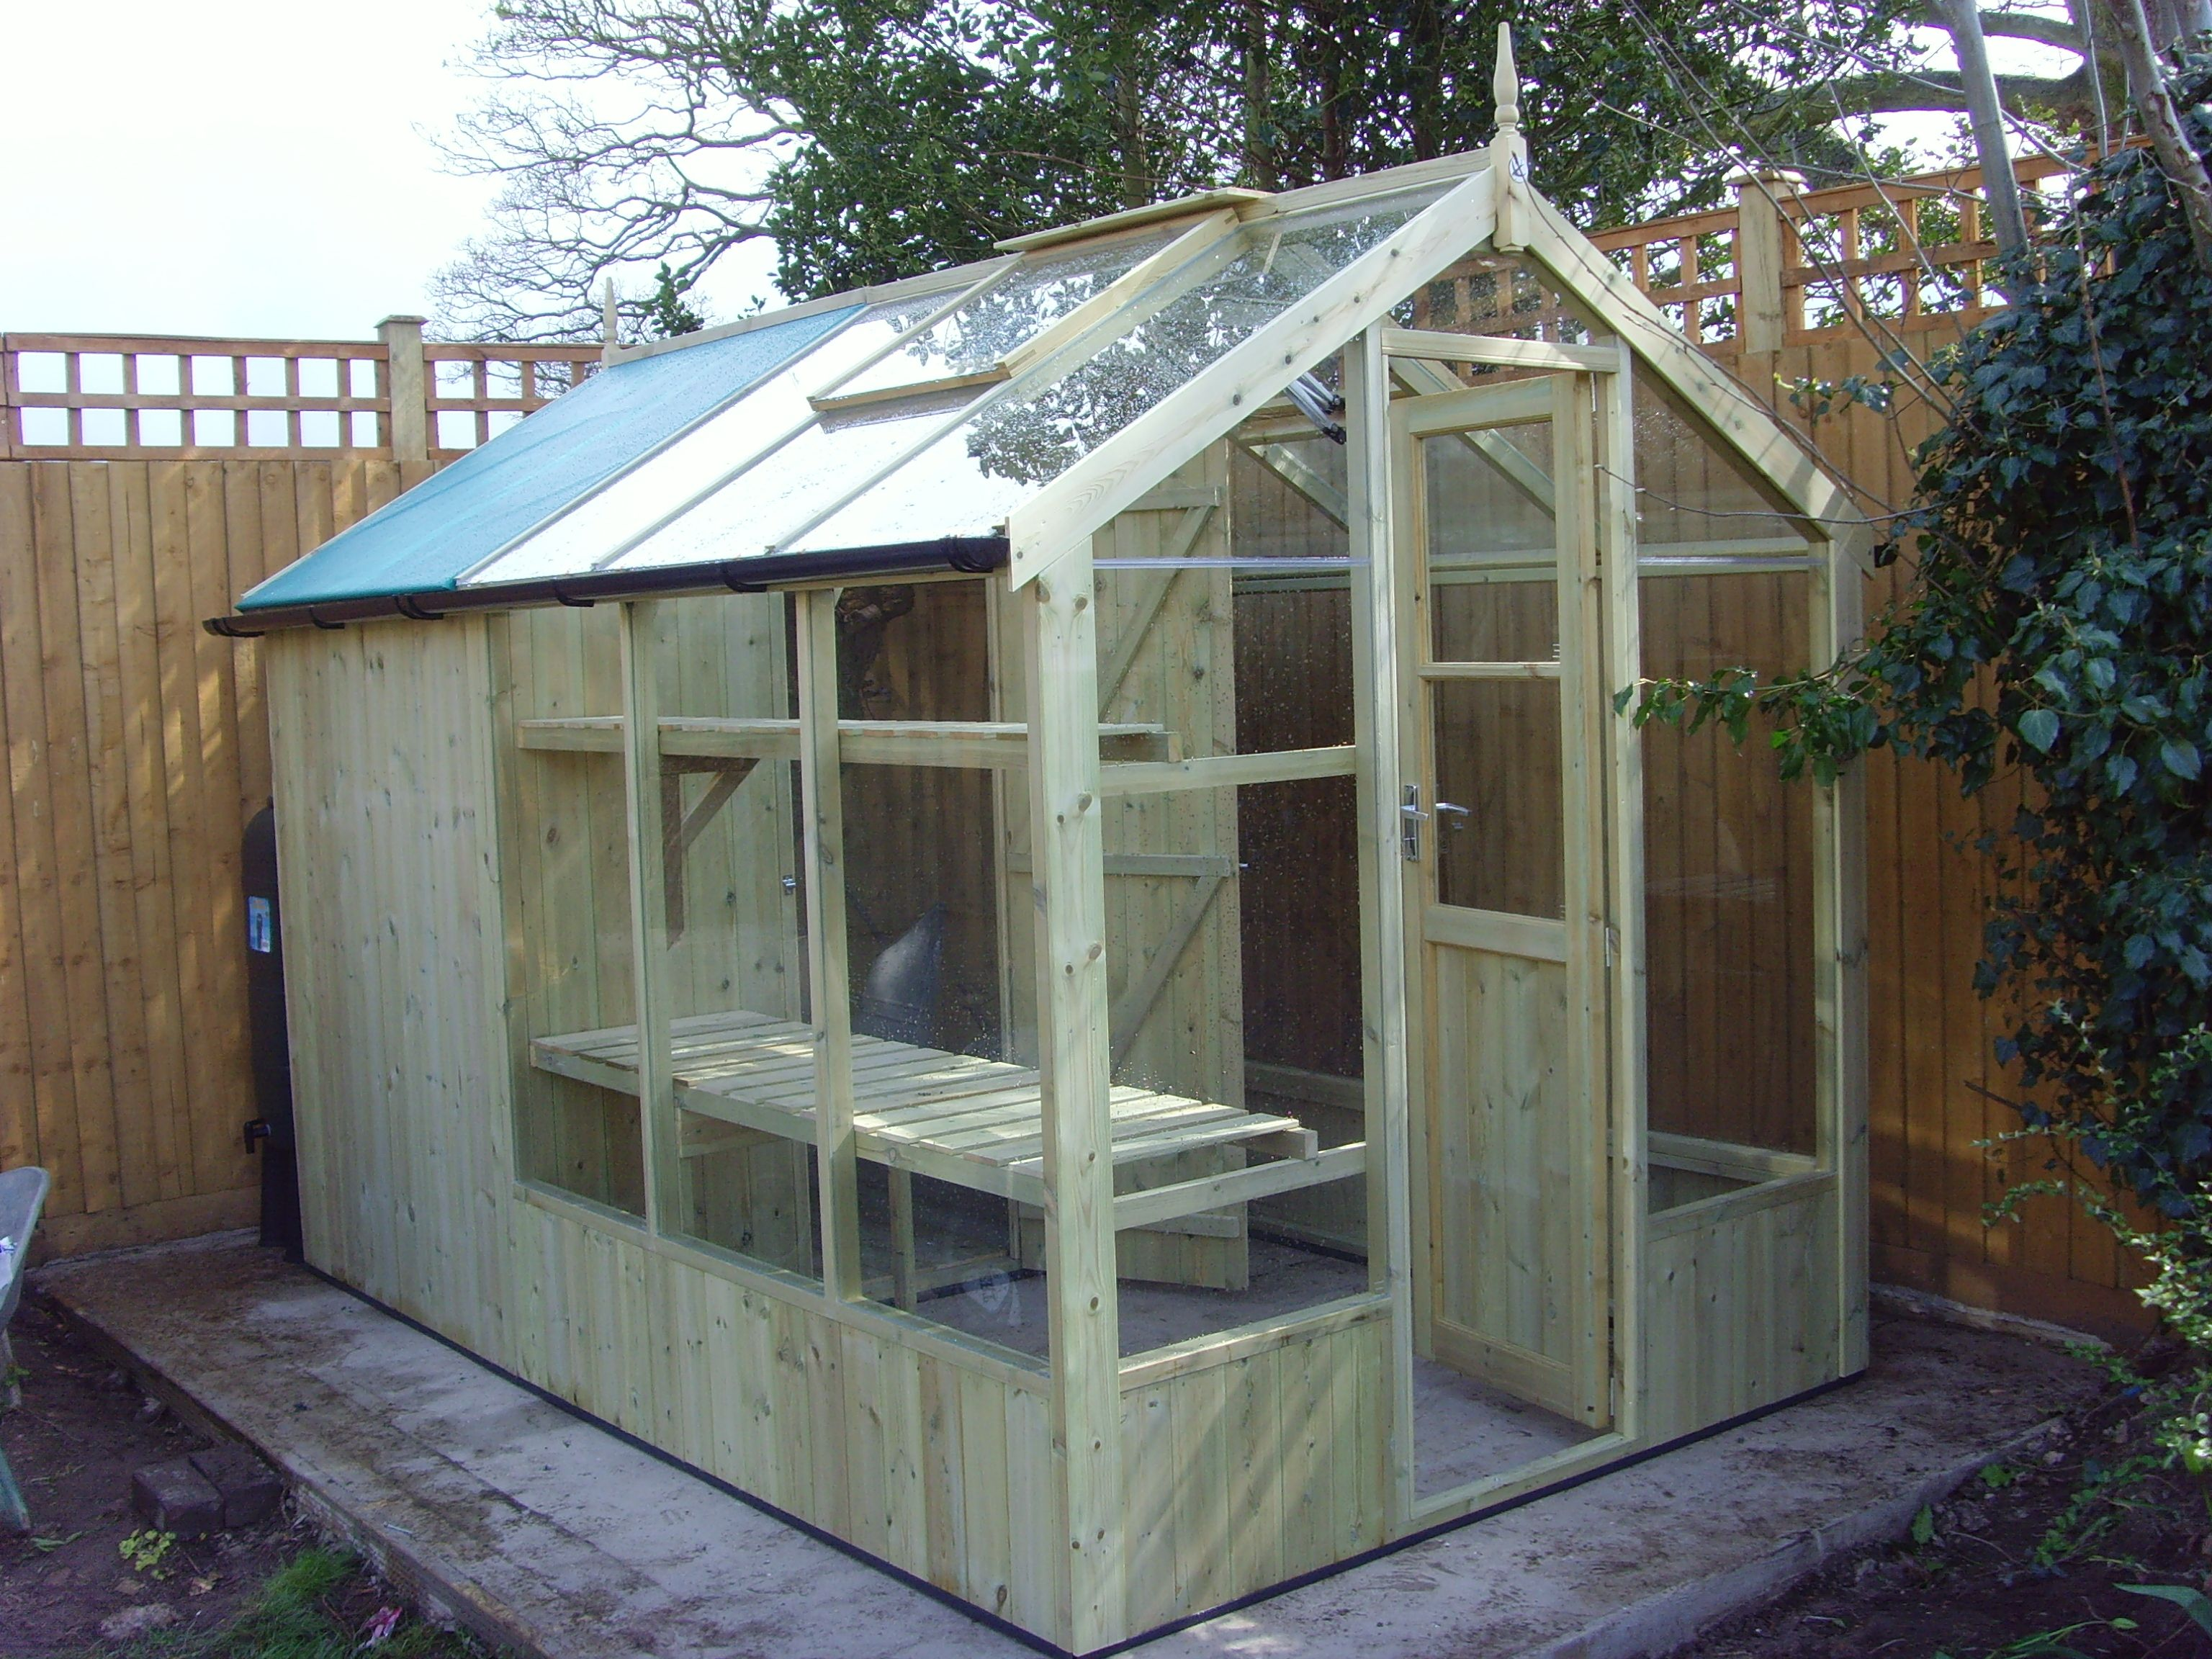 swallow kingfisher 6x6 wooden greenhouse - Garden Sheds Greenhouses Combined